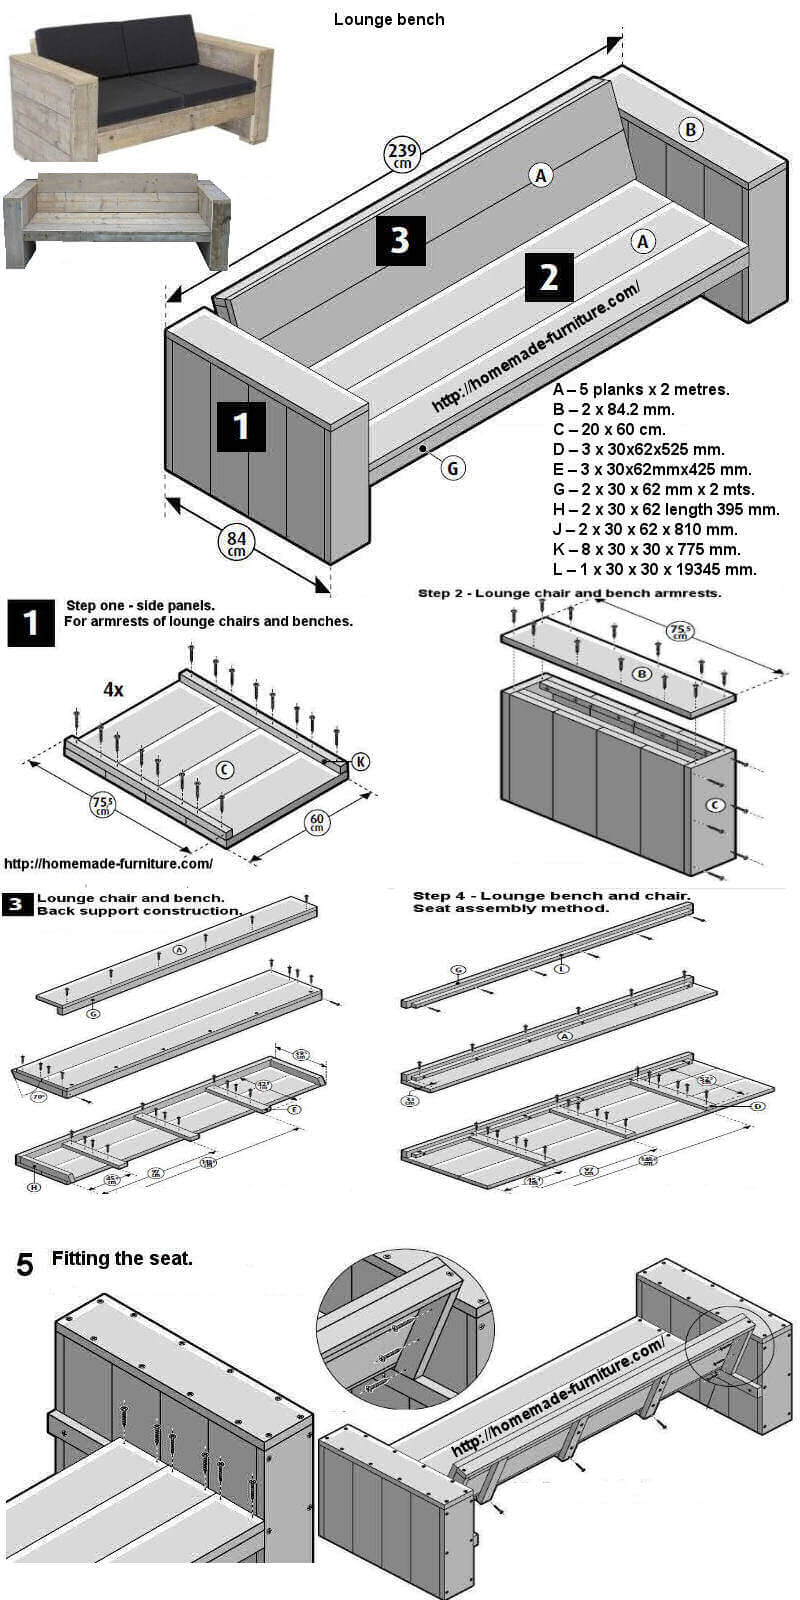 Lounge Bench Tutorial Building Plans Of Homemade Scaffold